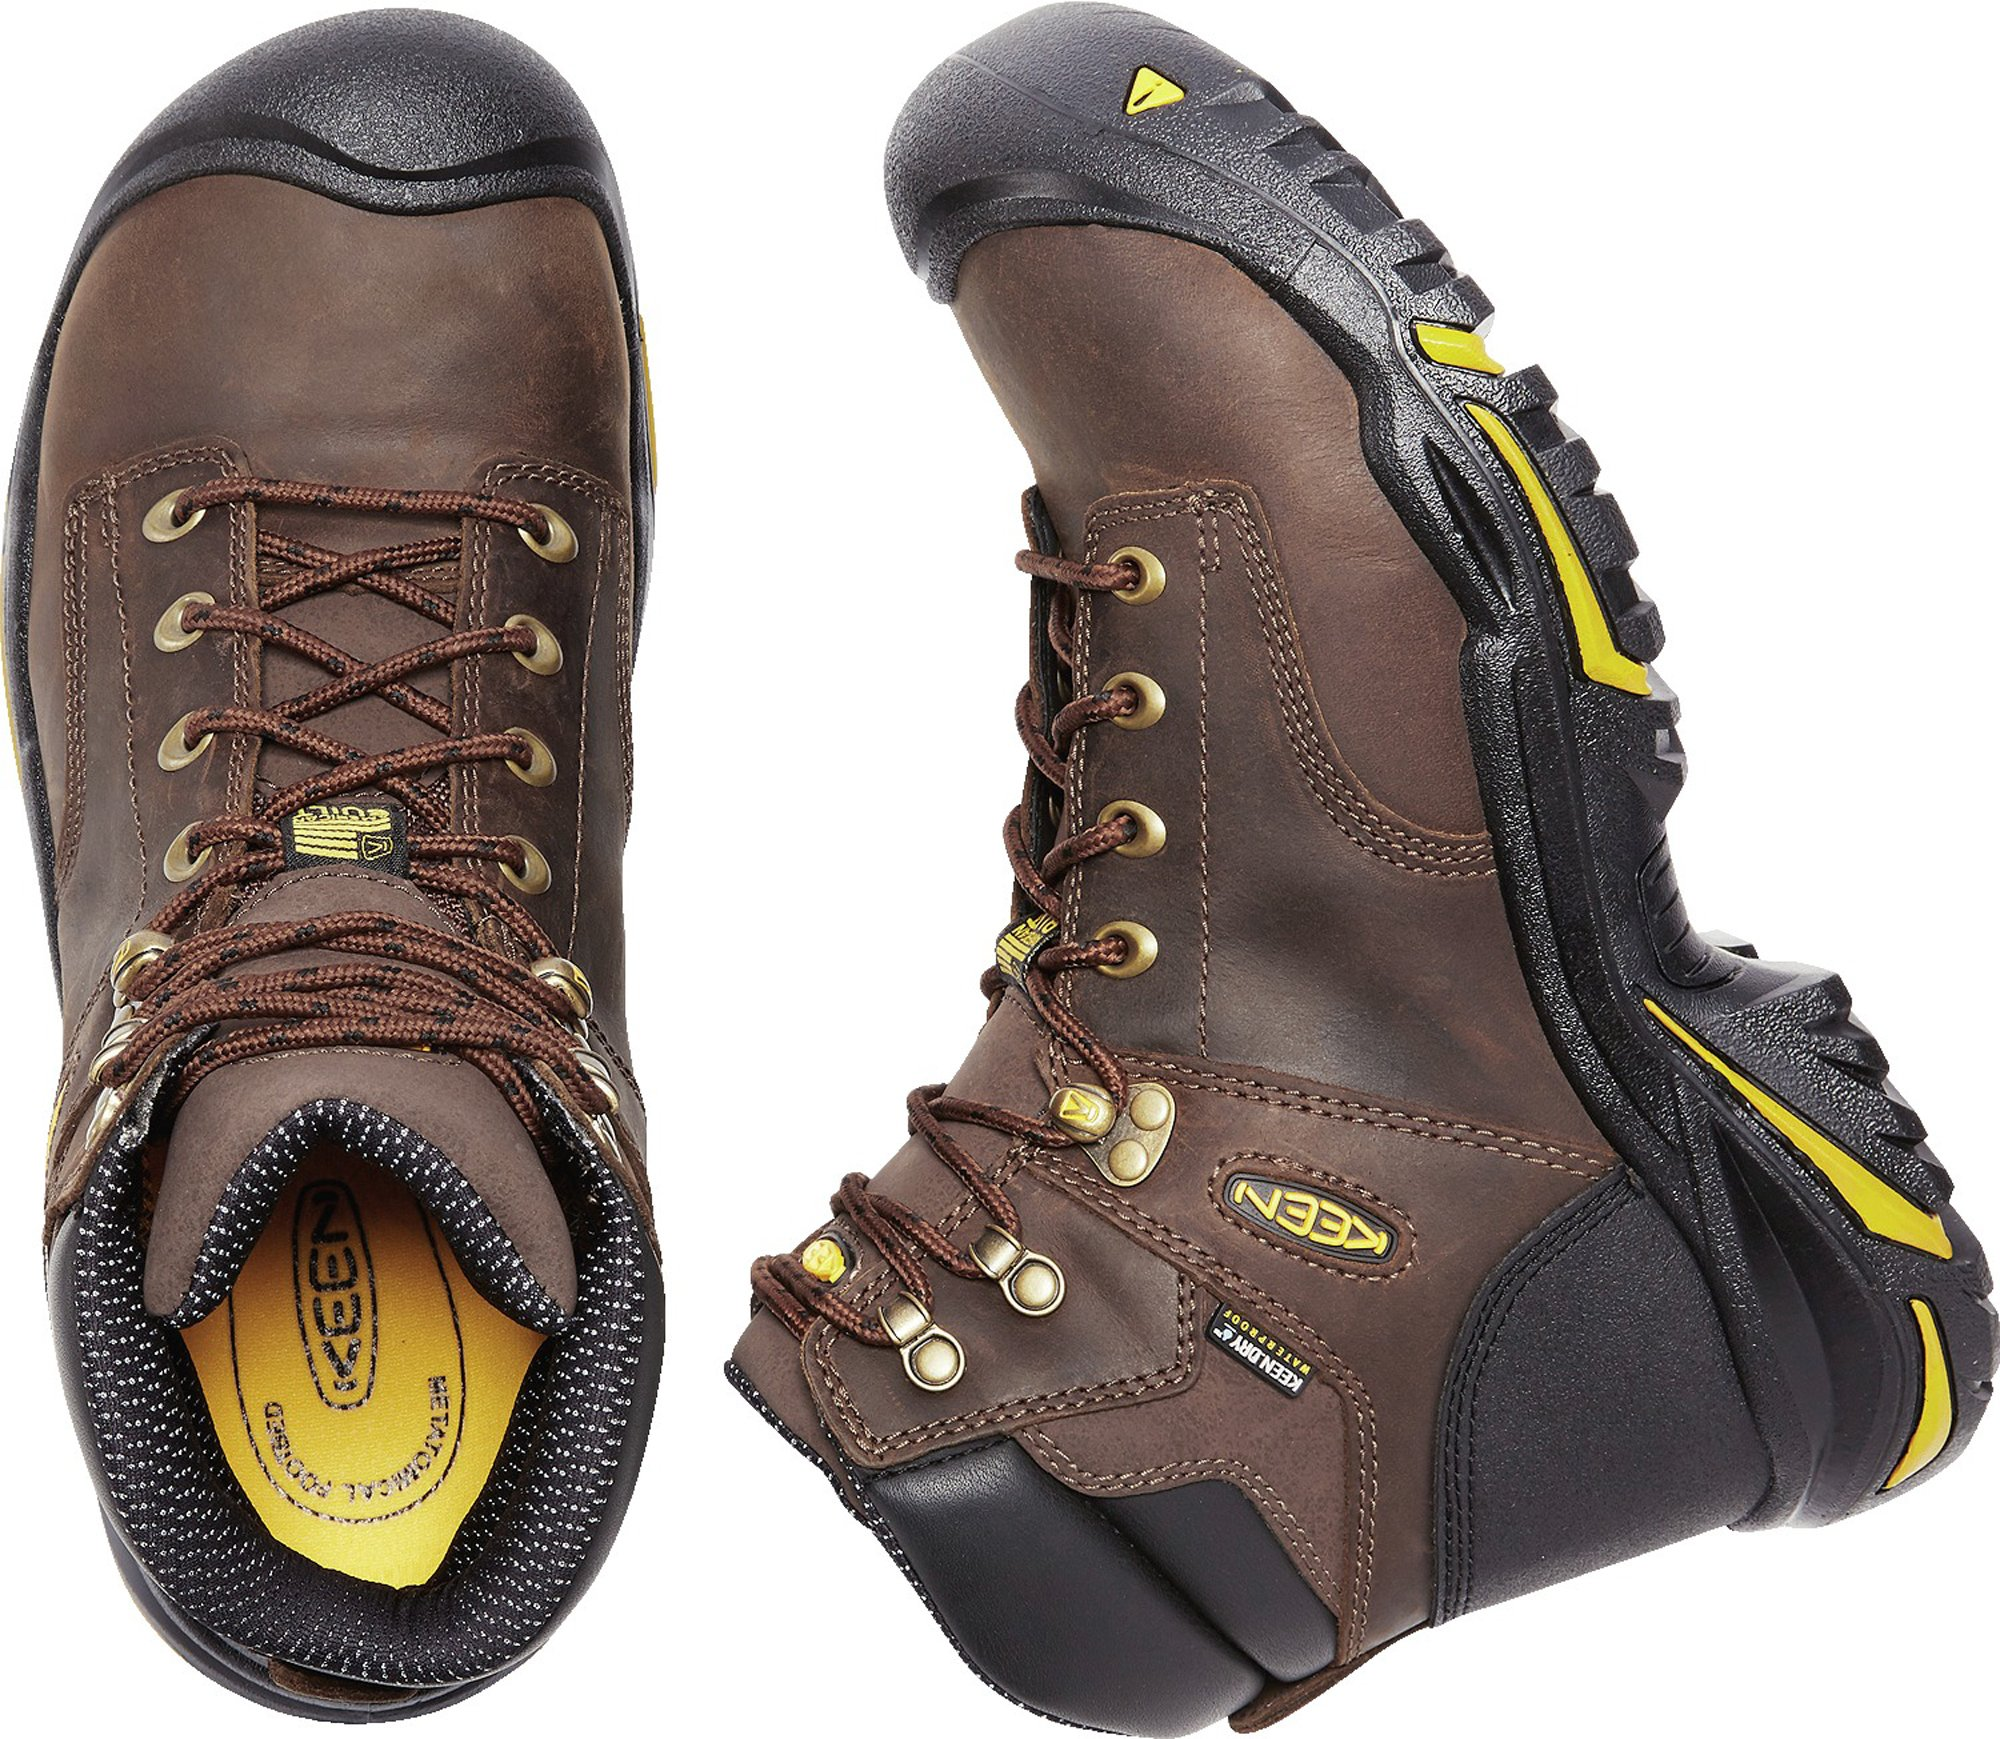 KEEN Utility MT Vernon 6'' Waterproof (Steel Toe), Men's Work Boot, Cascade Brown, 15 EE by KEEN Utility (Image #8)